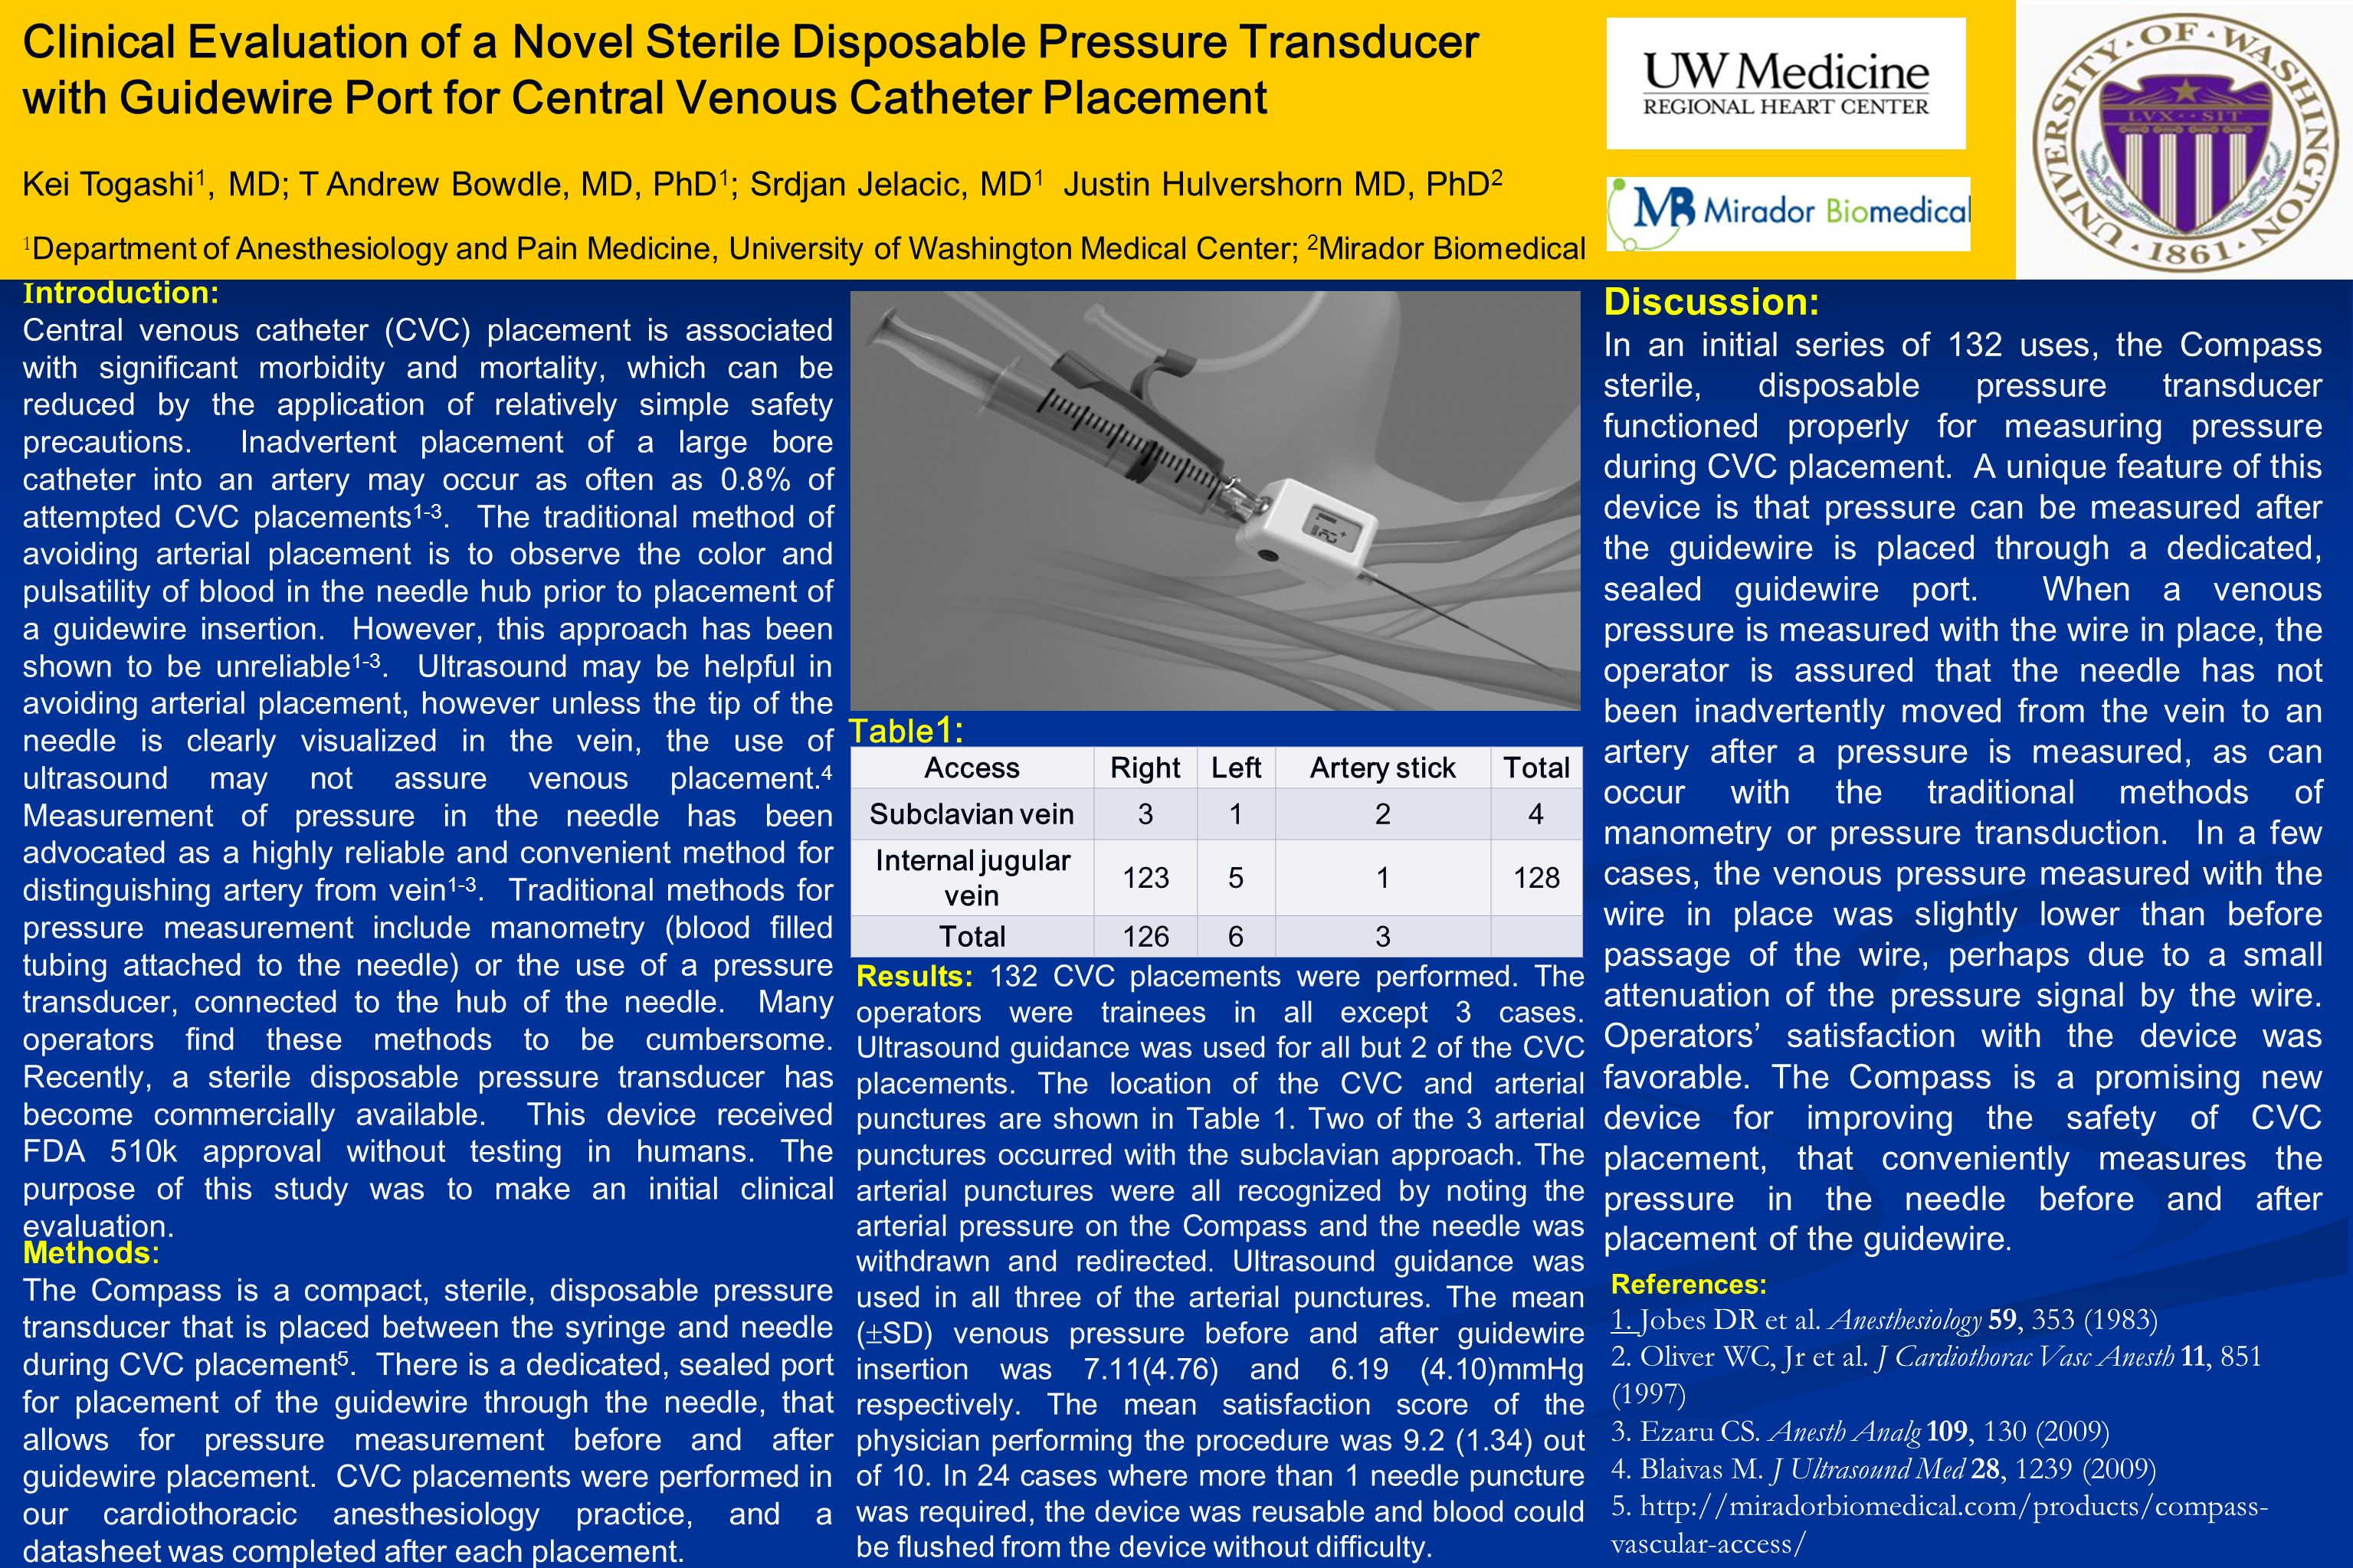 Clinical Evaluation of a Novel Sterile Disposable Pressure Transducer